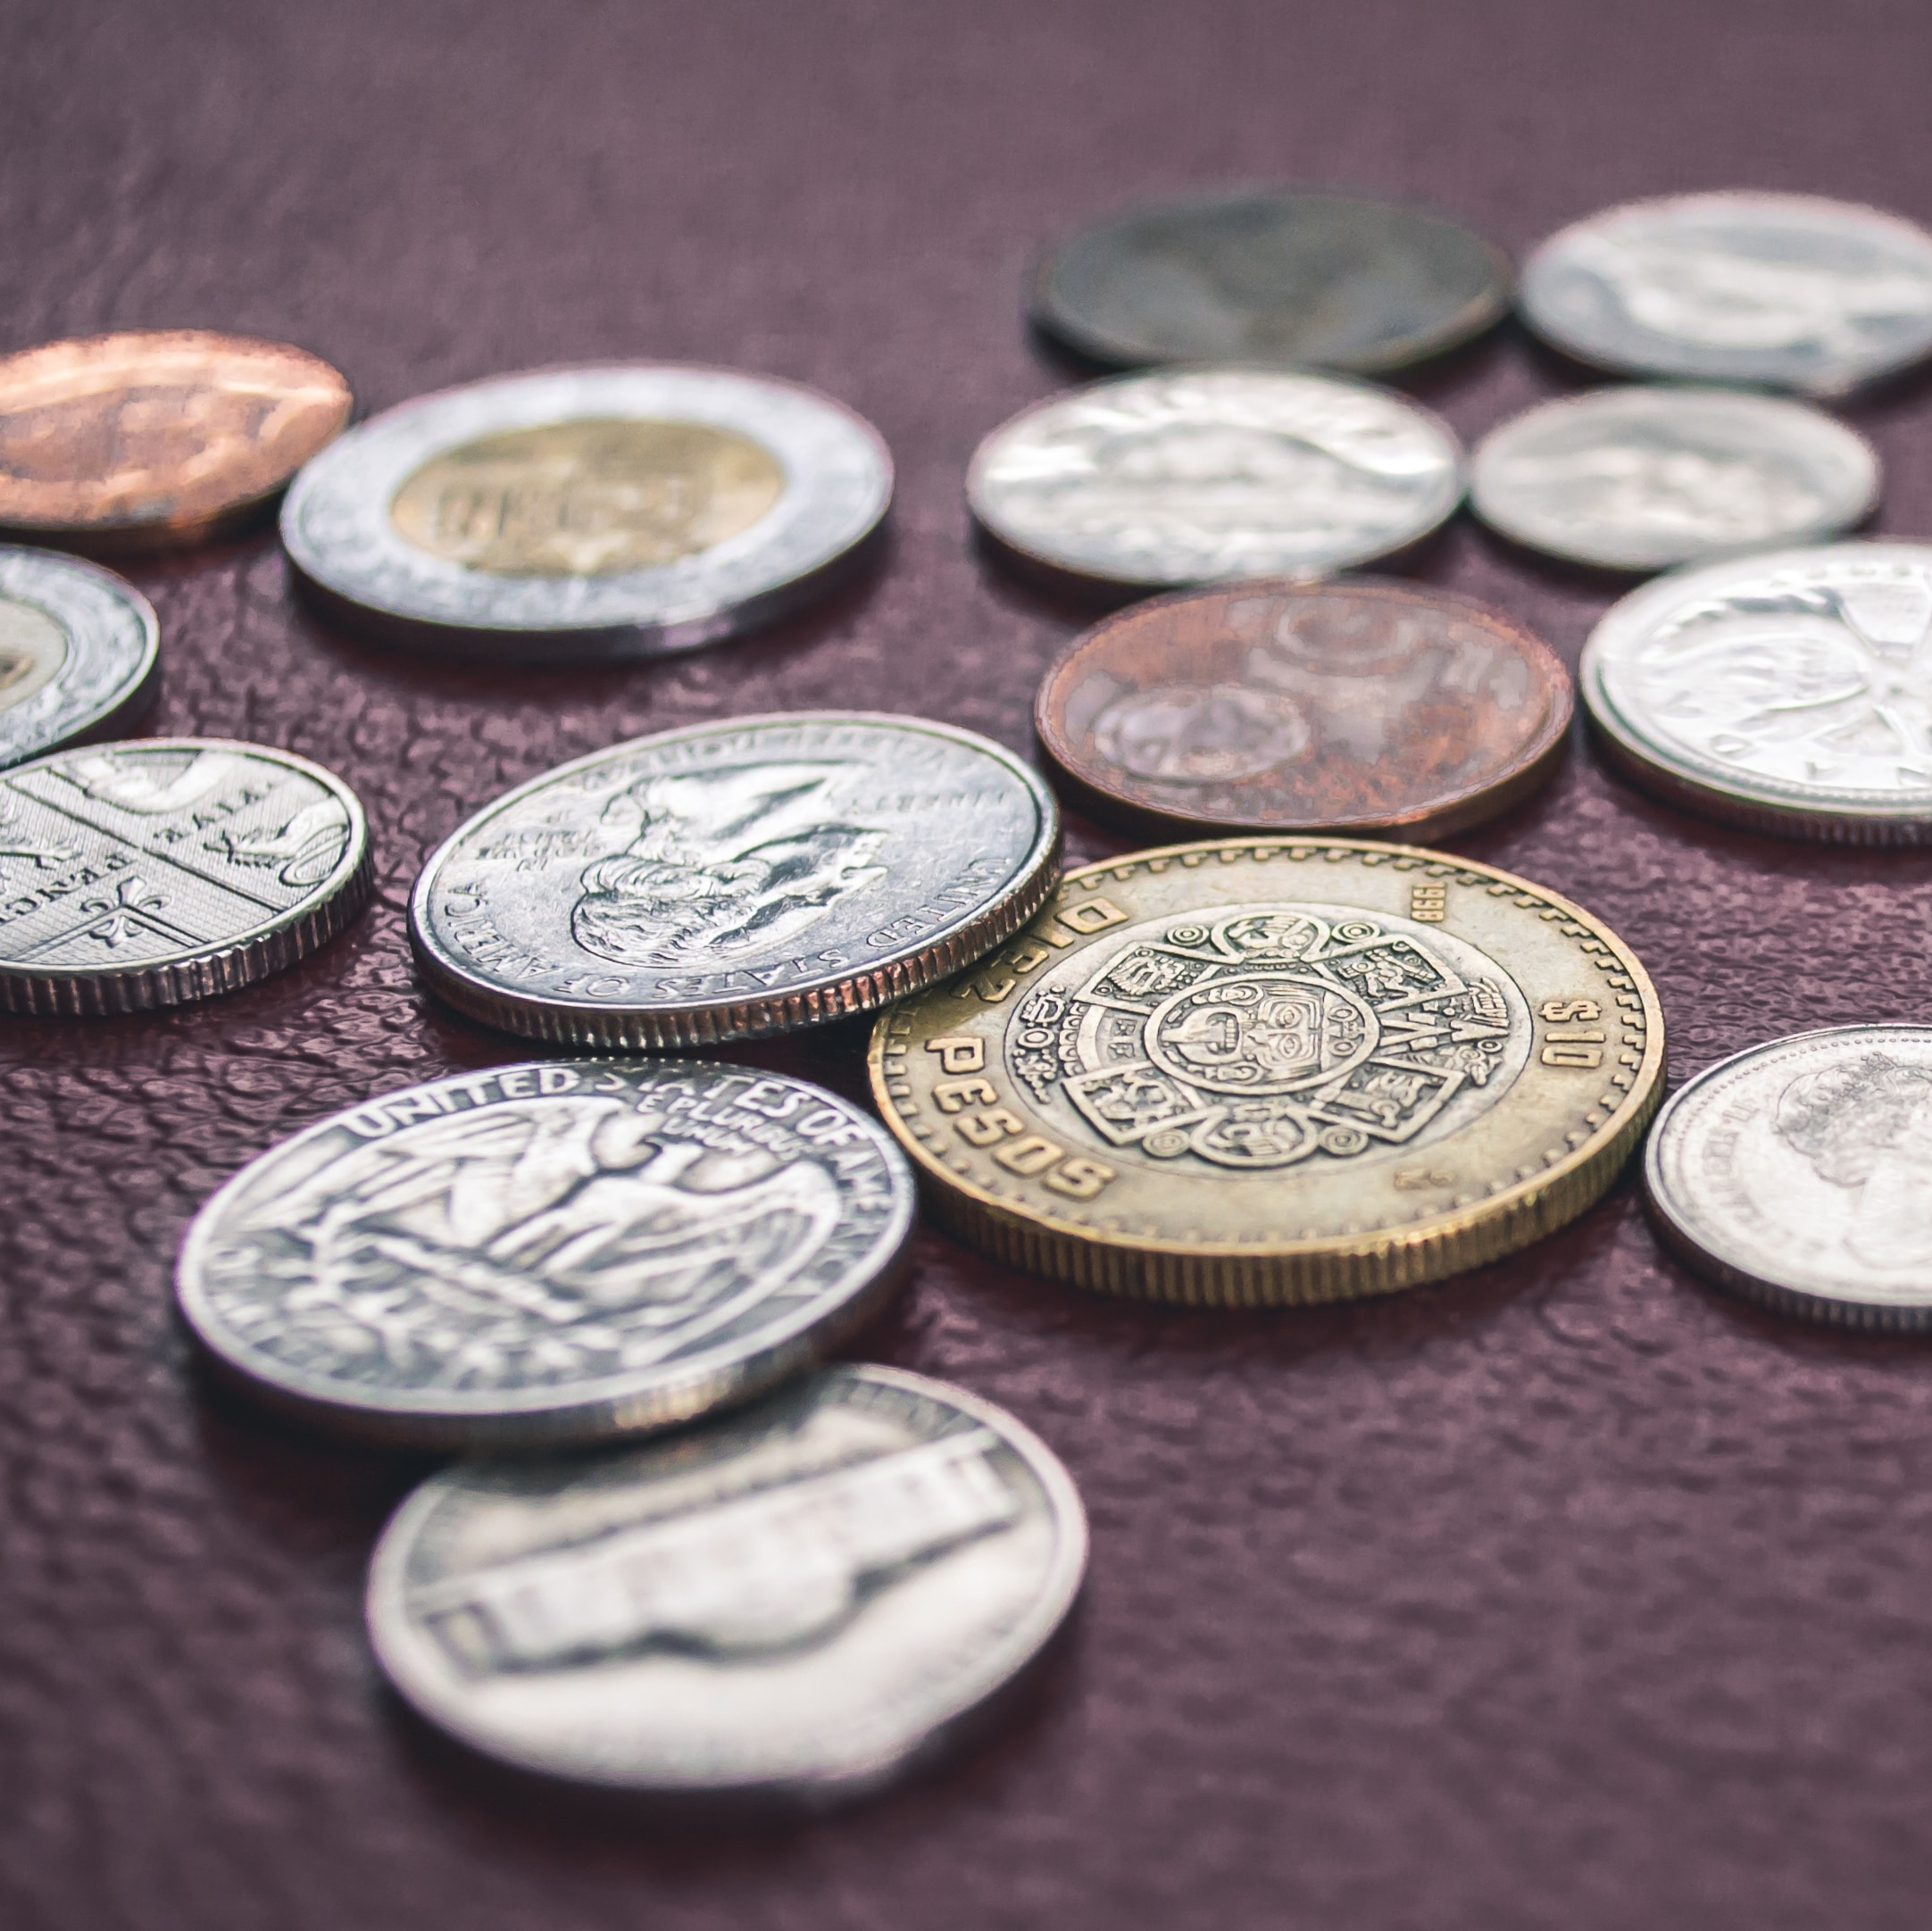 Coins from currencies around the world, scattered on a table.